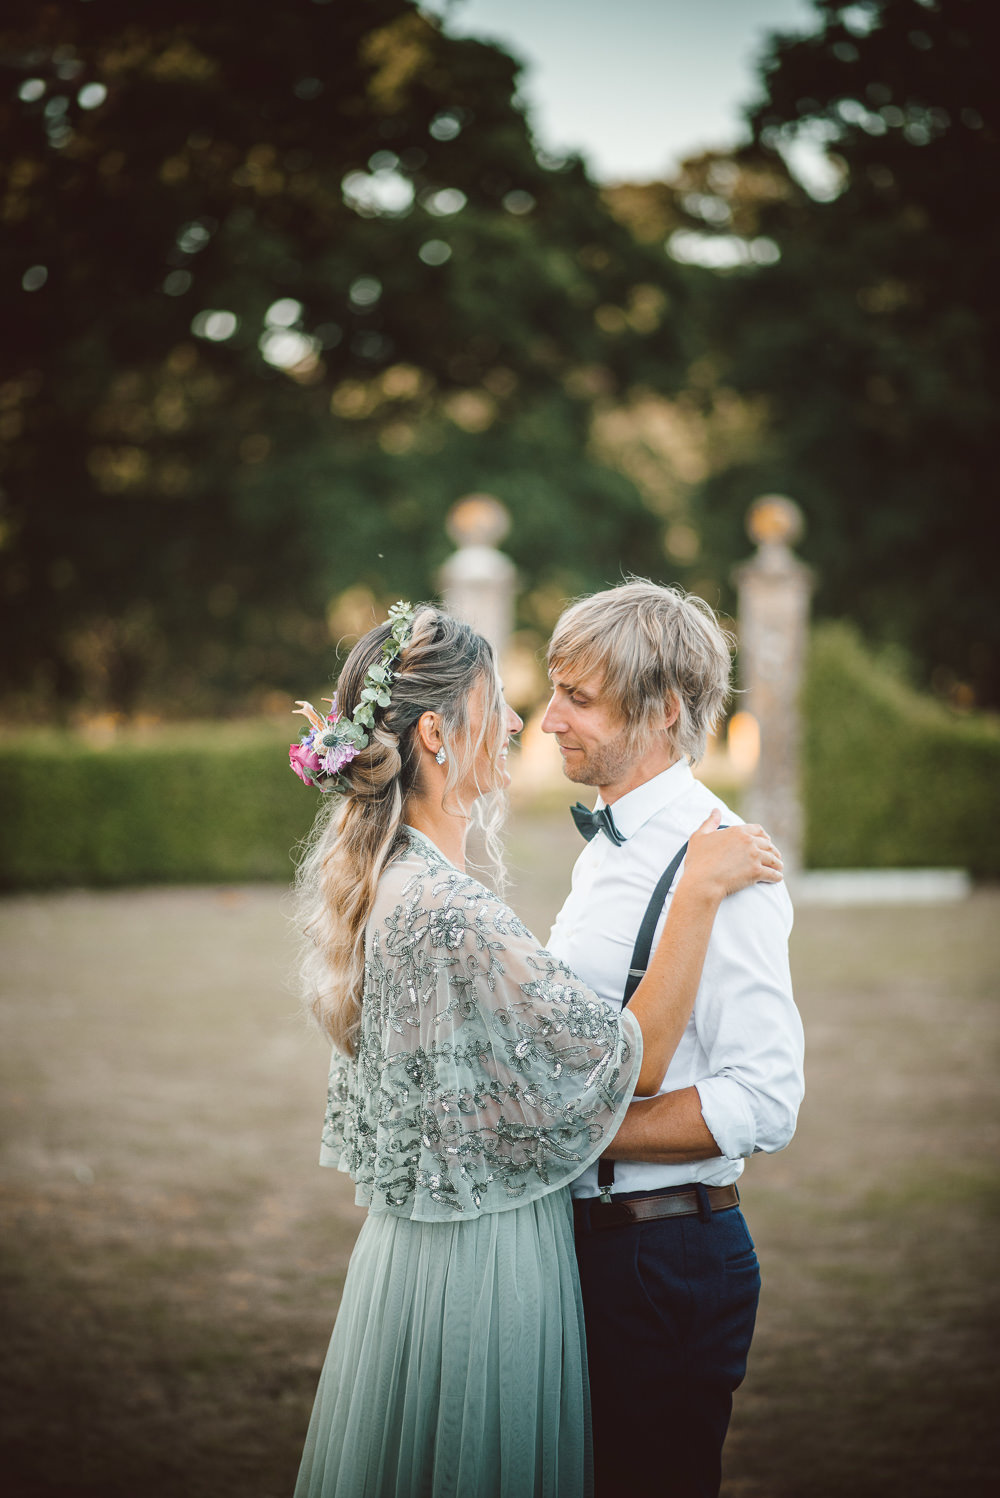 Dress Gown Bride Bridal Green Sequin Tulle Sleeves Embellished Cape Ethereal Magical Golden Hour Wedding Ideas Dhw Photography